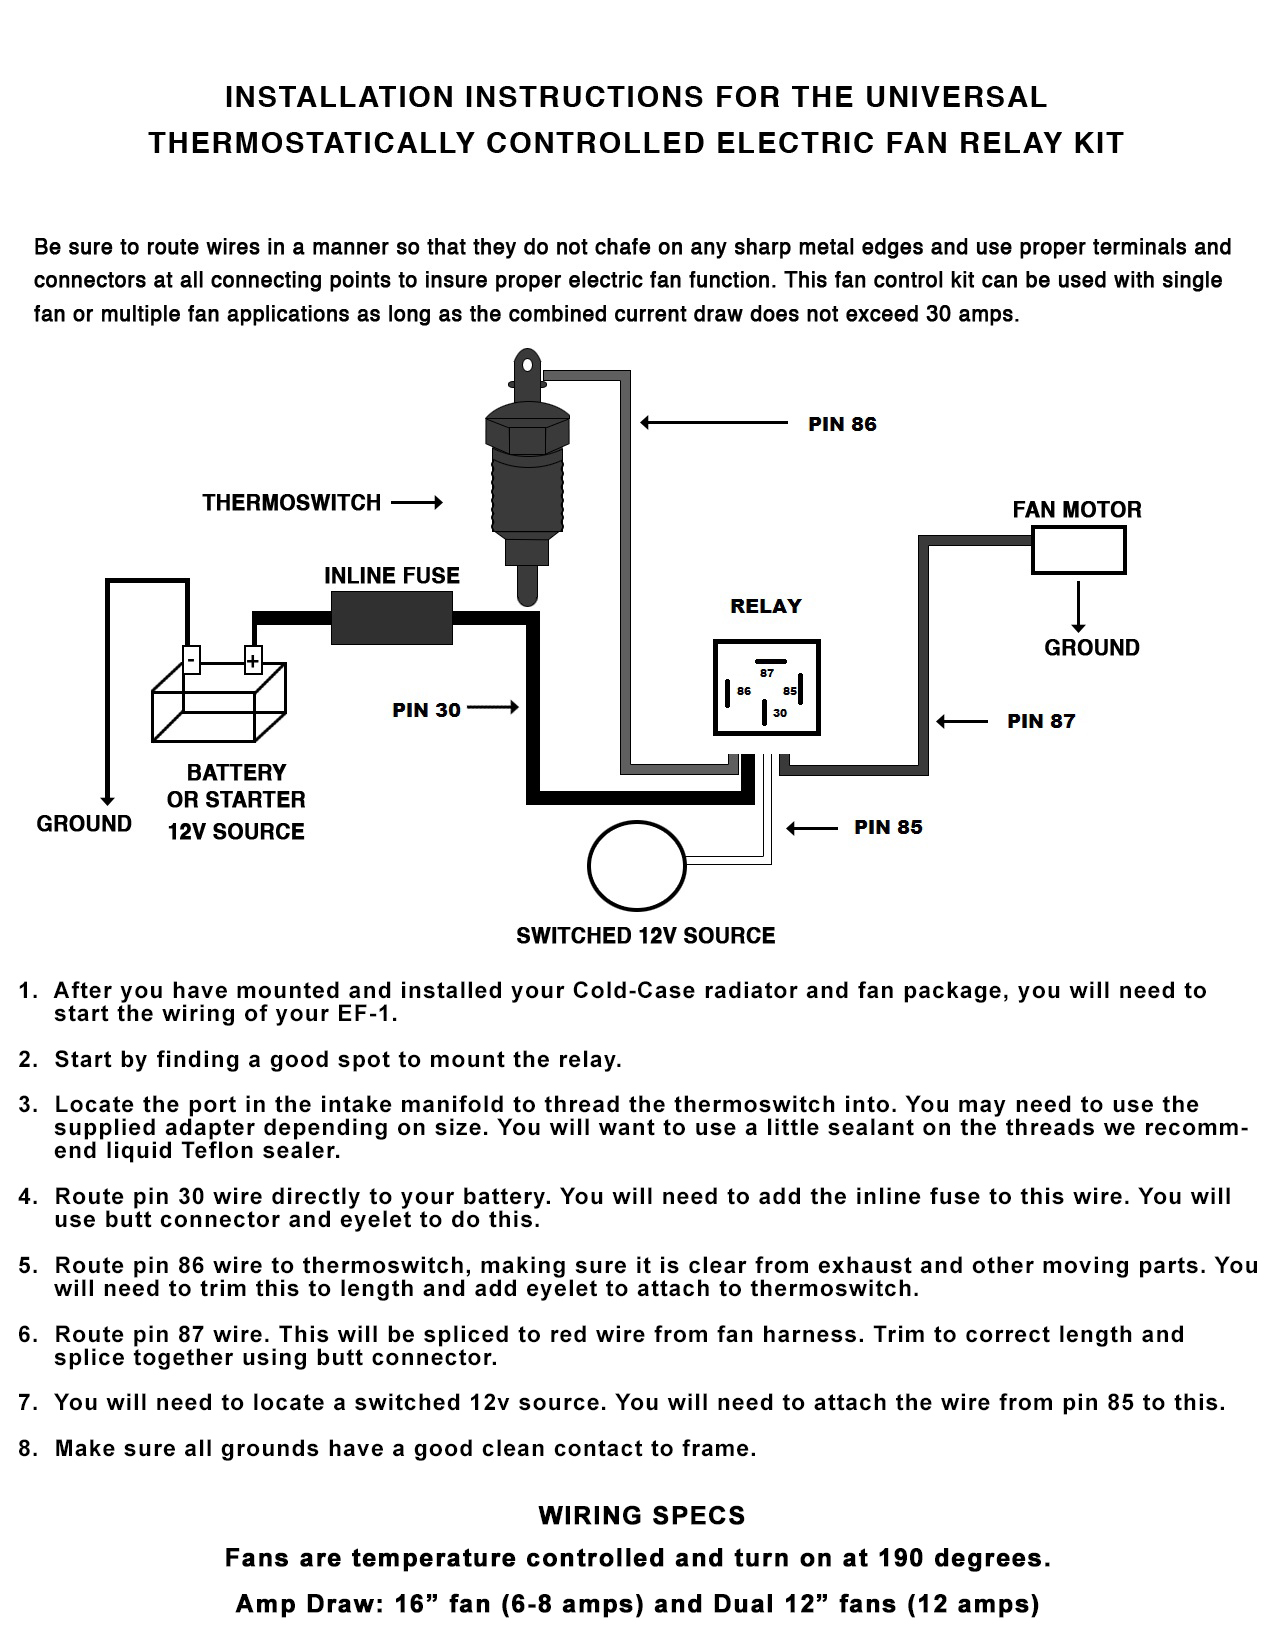 Peachy Electric Fan Relay Wiring Kit Cold Case Radiators Cold Case Radiators Wiring Cloud Grayisramohammedshrineorg